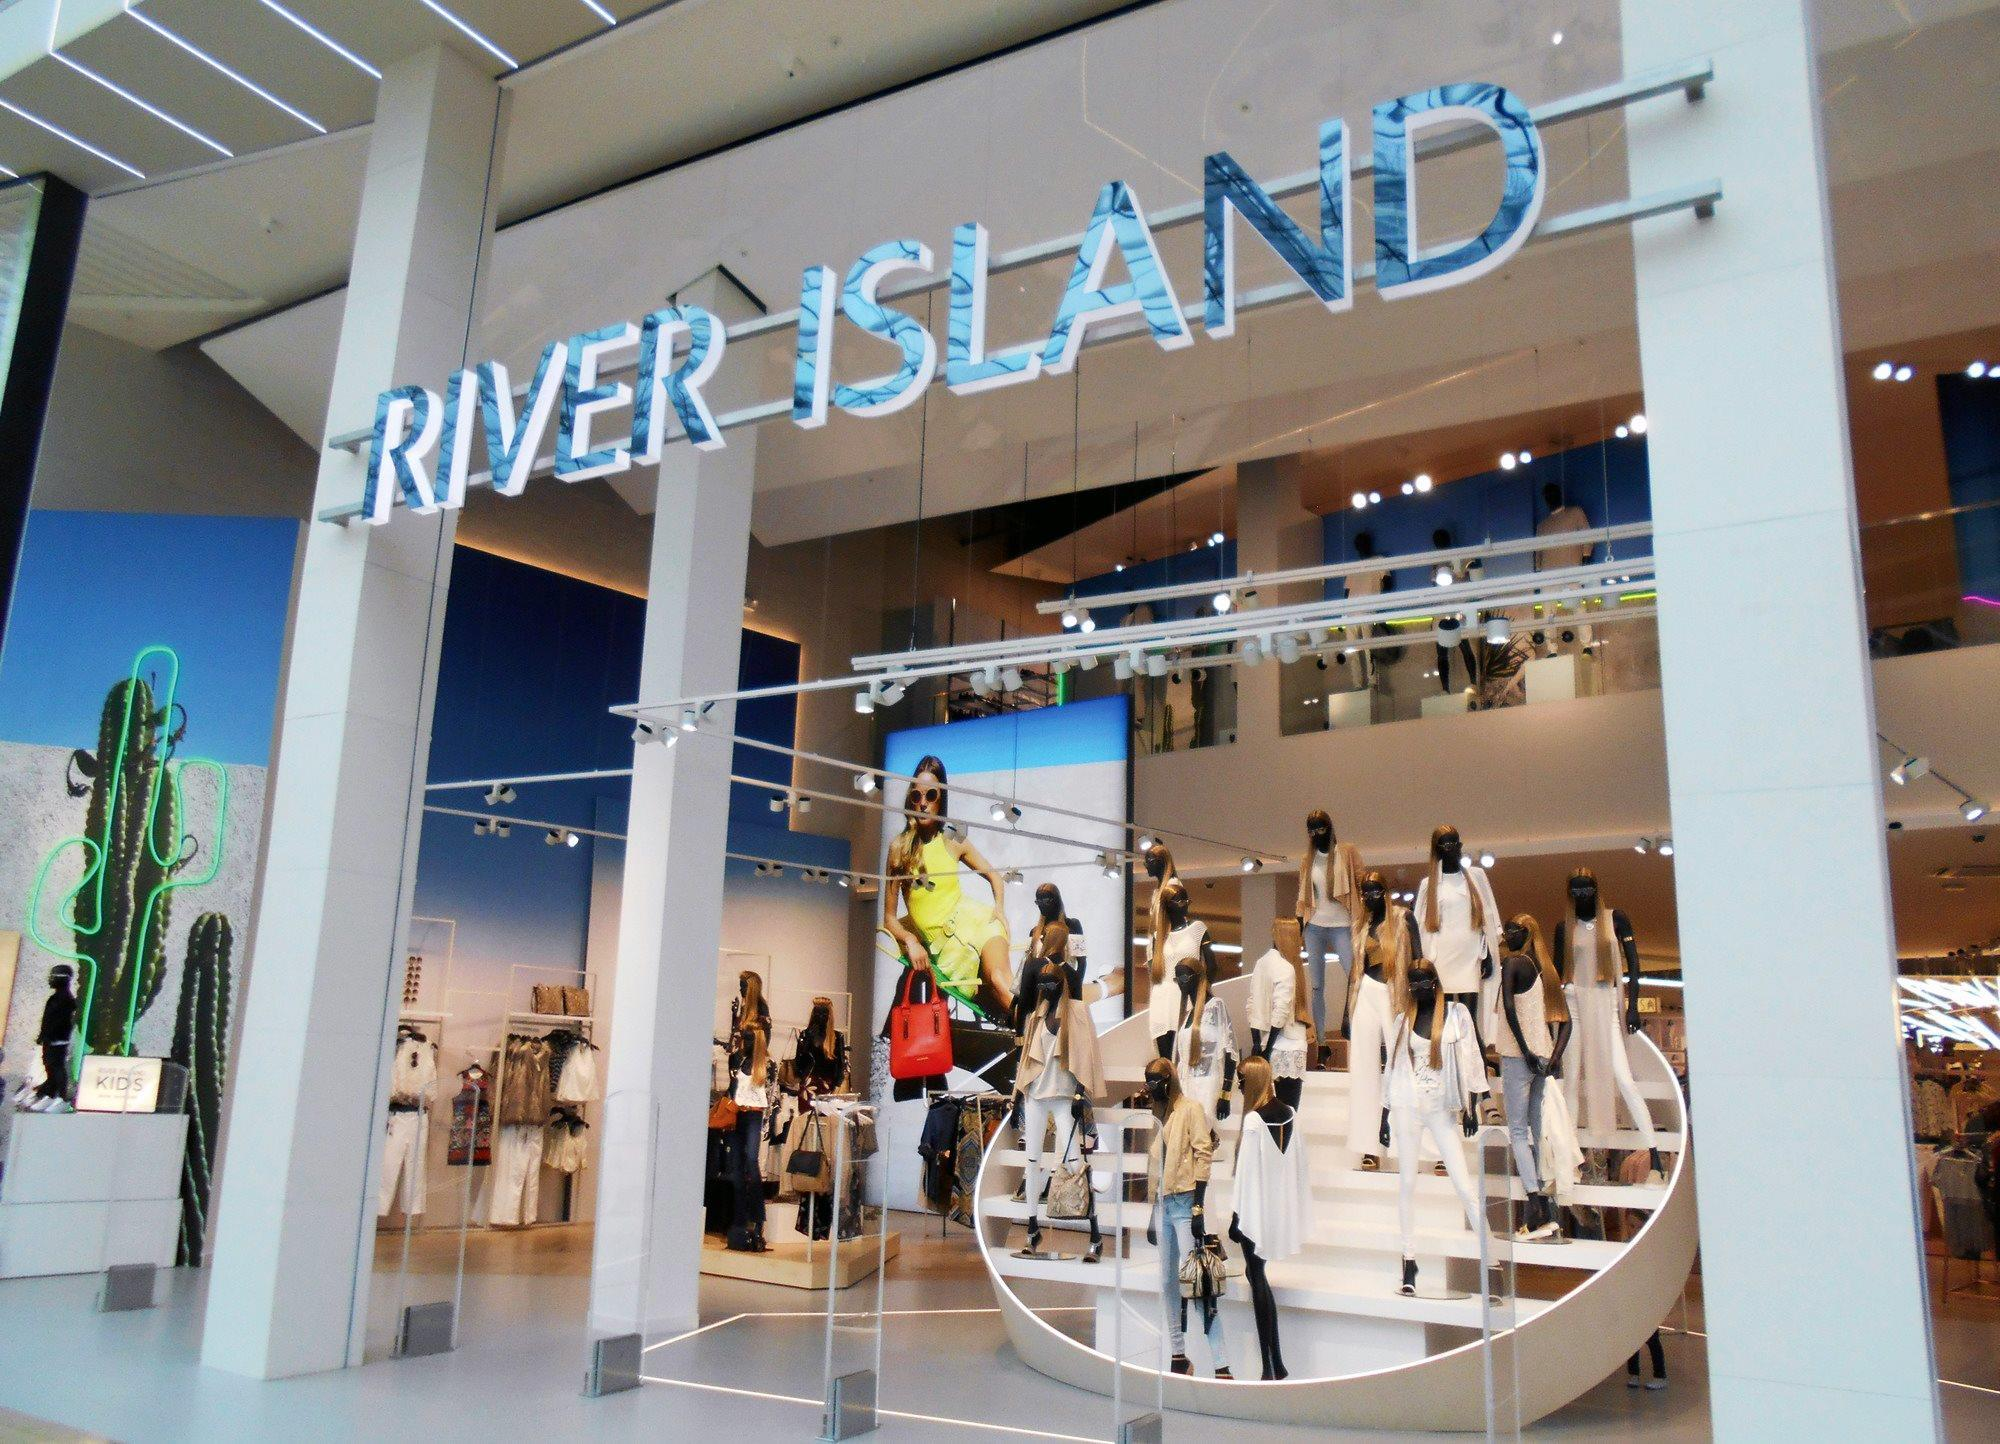 riverisland_River Island turns flagship store into an event to grab shoppers attention | News ...